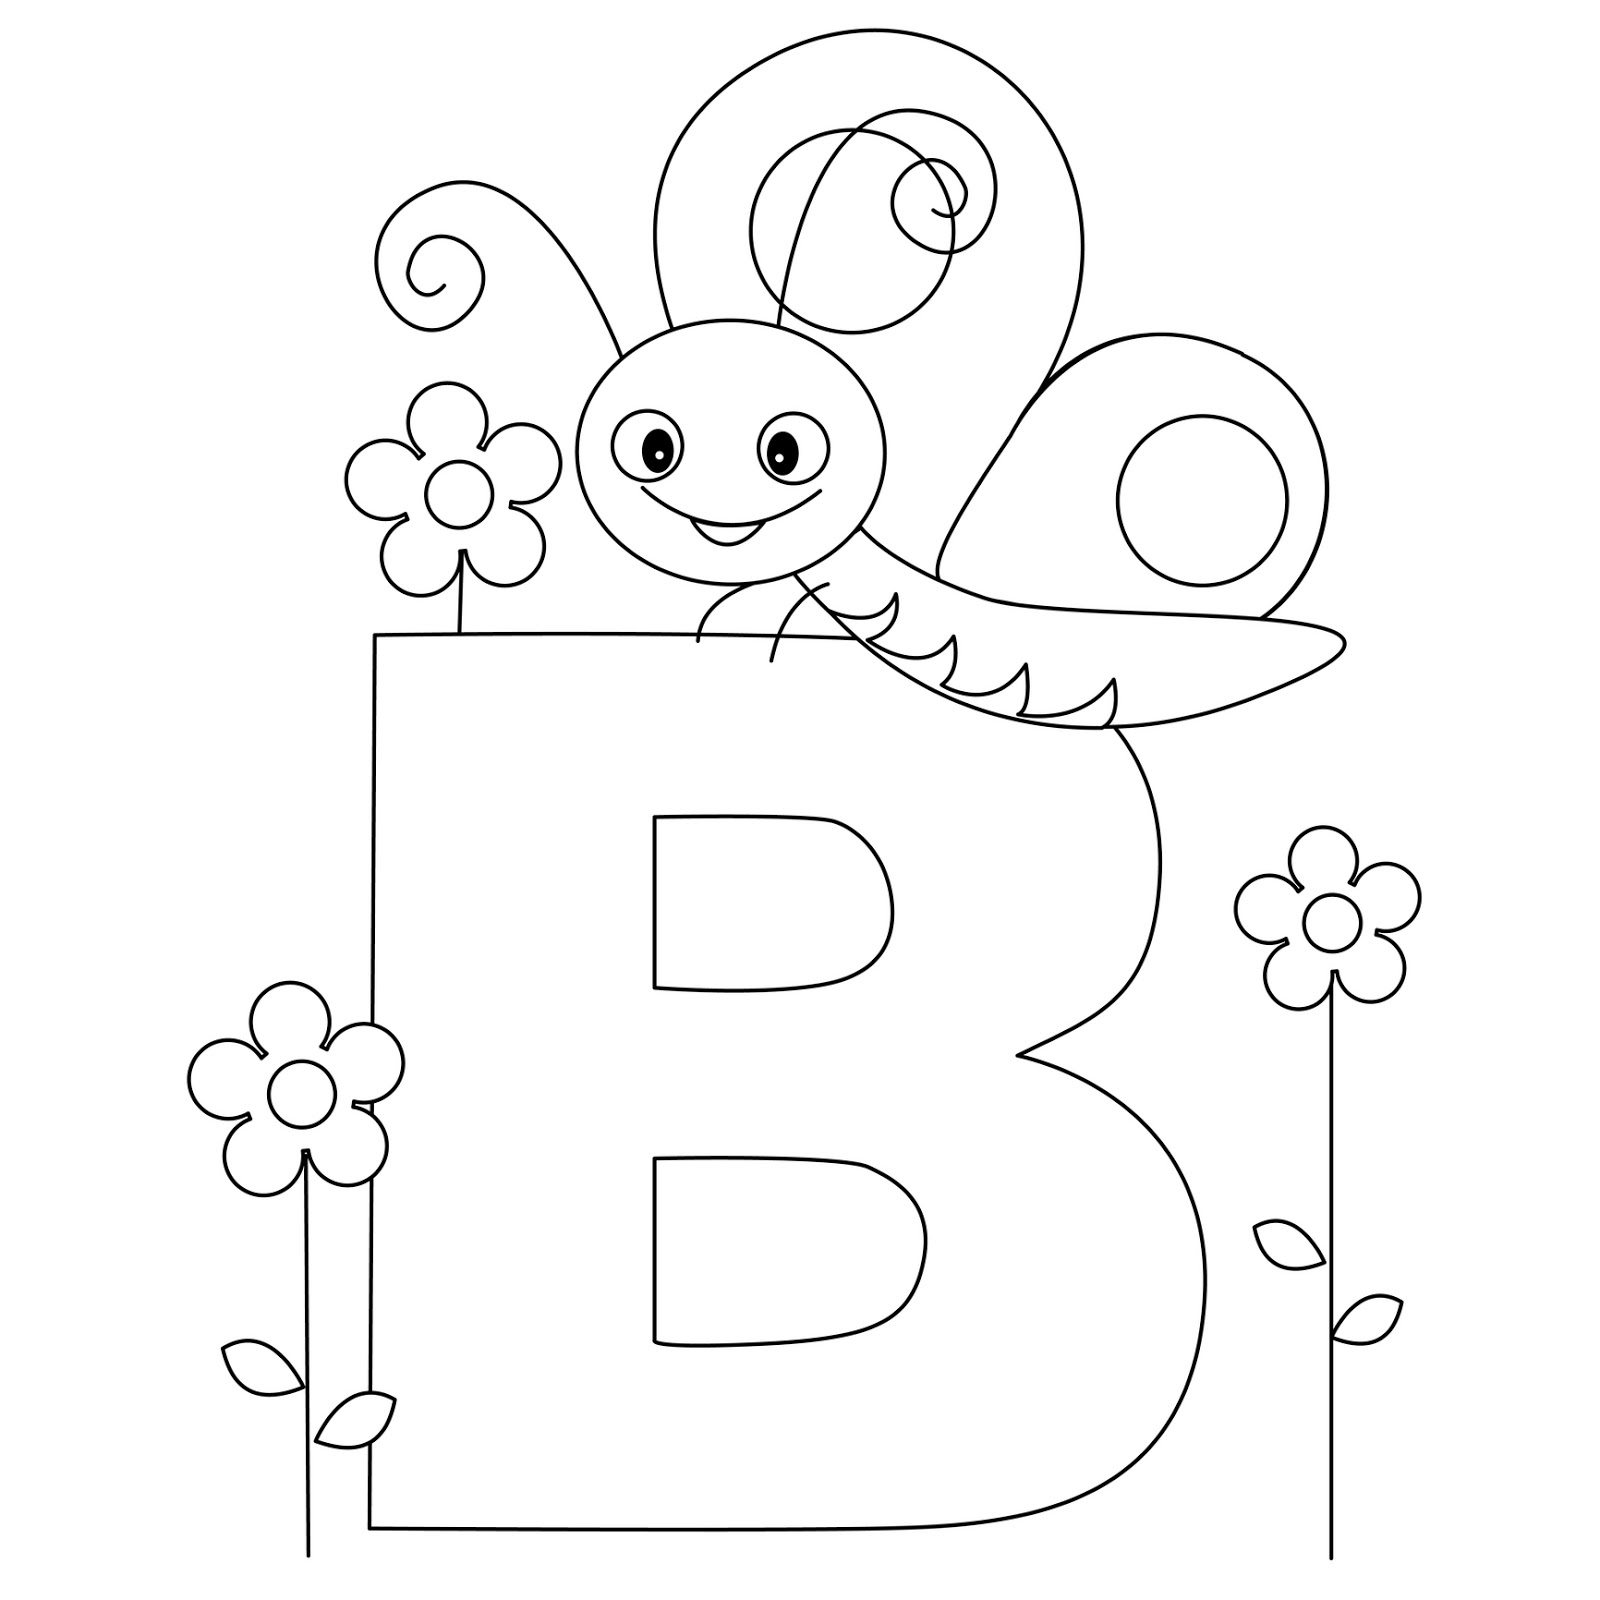 5 Images of Printable B Letters Alphabet For Preschoolers